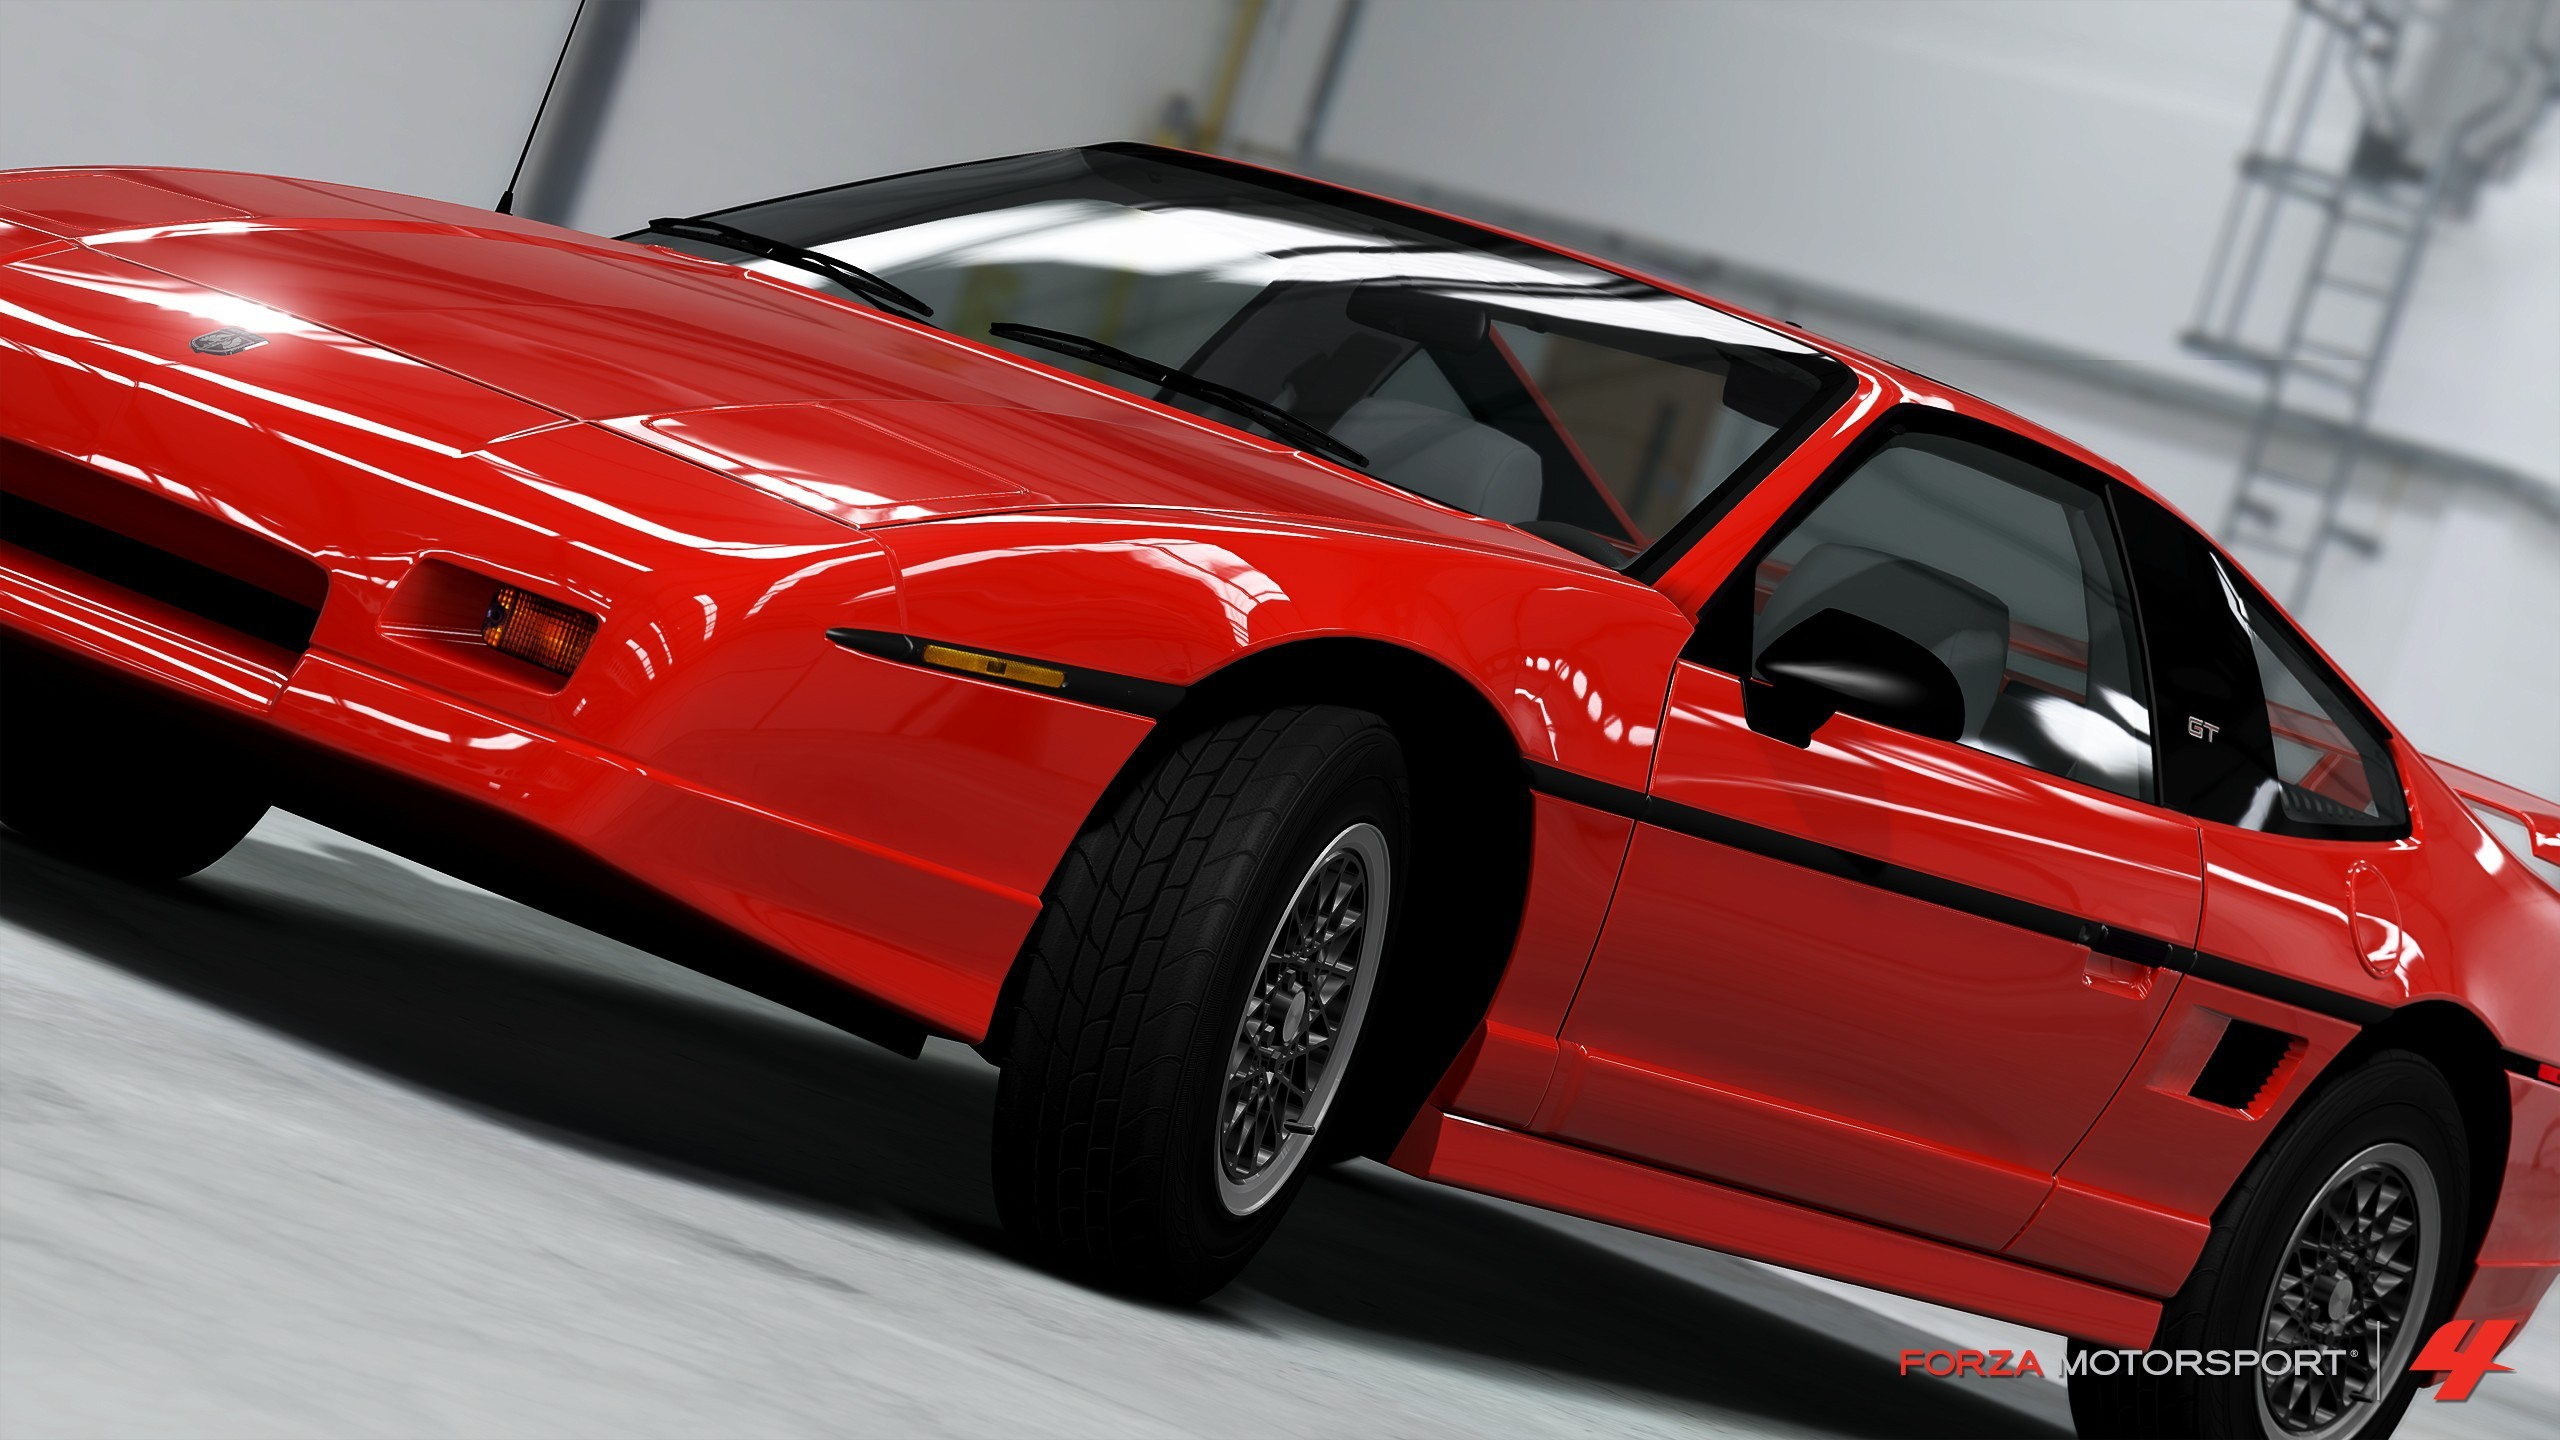 2560x1440 New car Pontiac Fiero wallpapers and images - wallpapers, pictures, photos